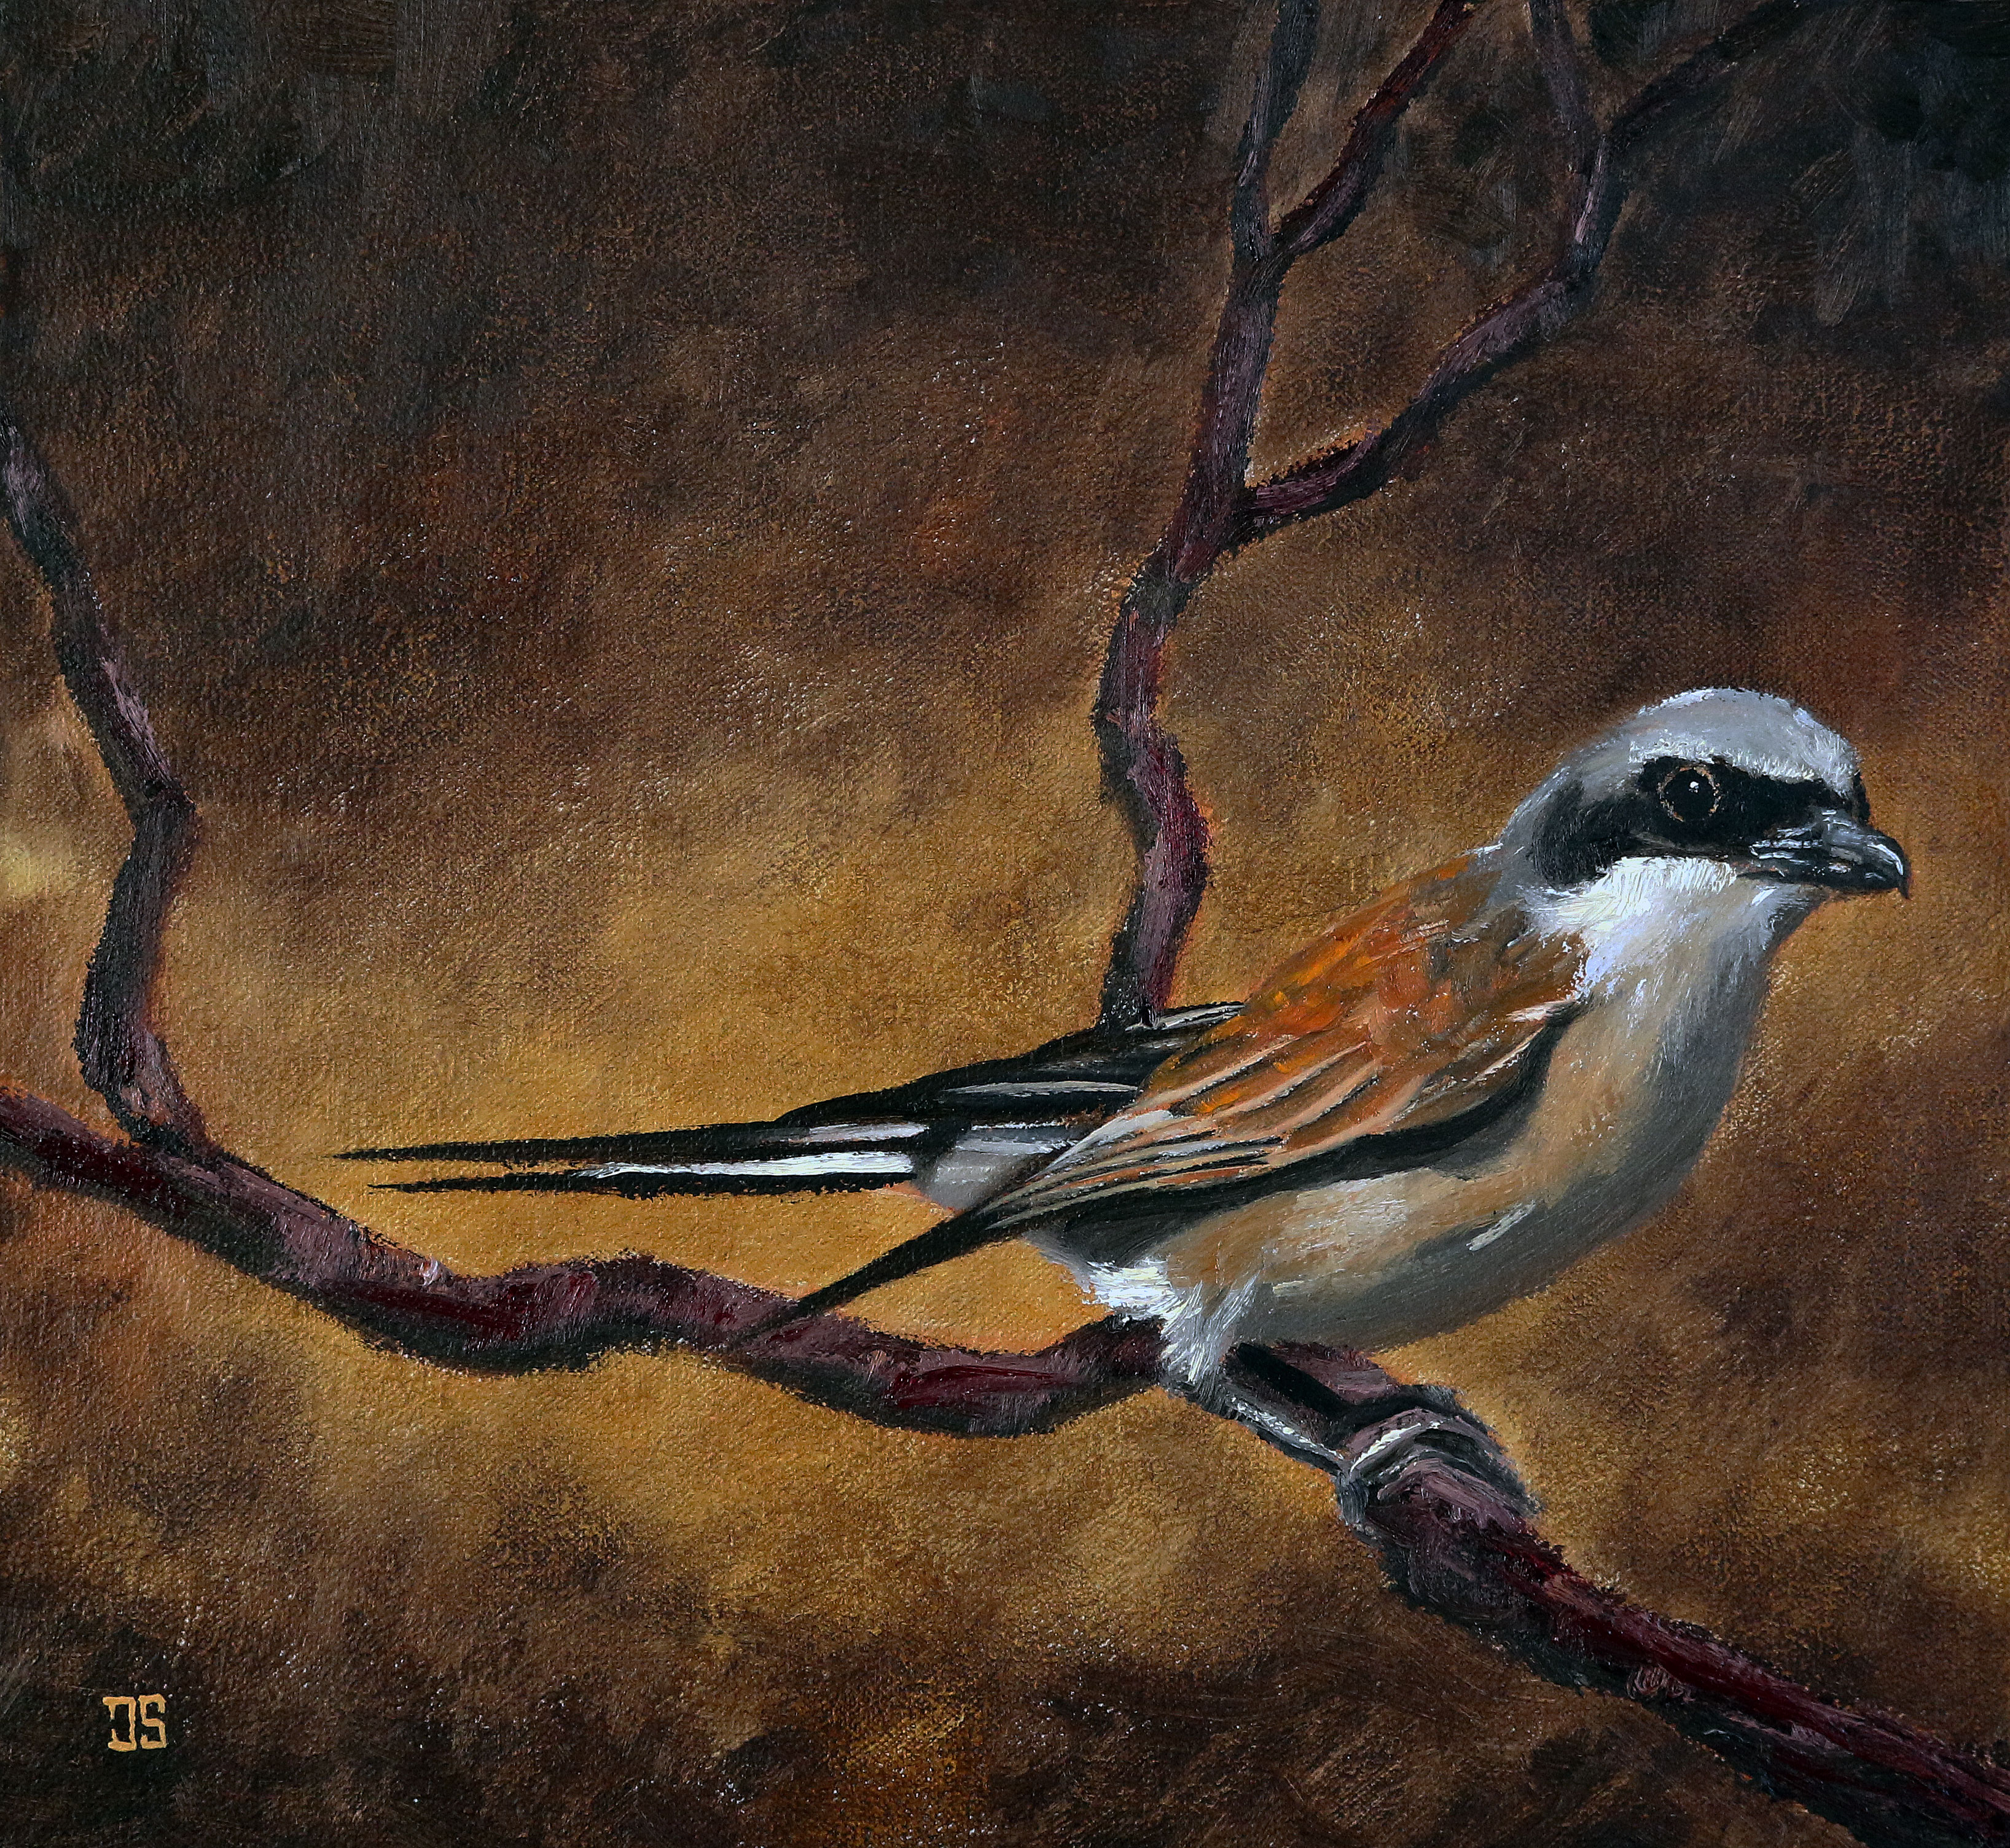 Oil painting of Red Backed Shrike by American artist Jeffrey Dale Starr